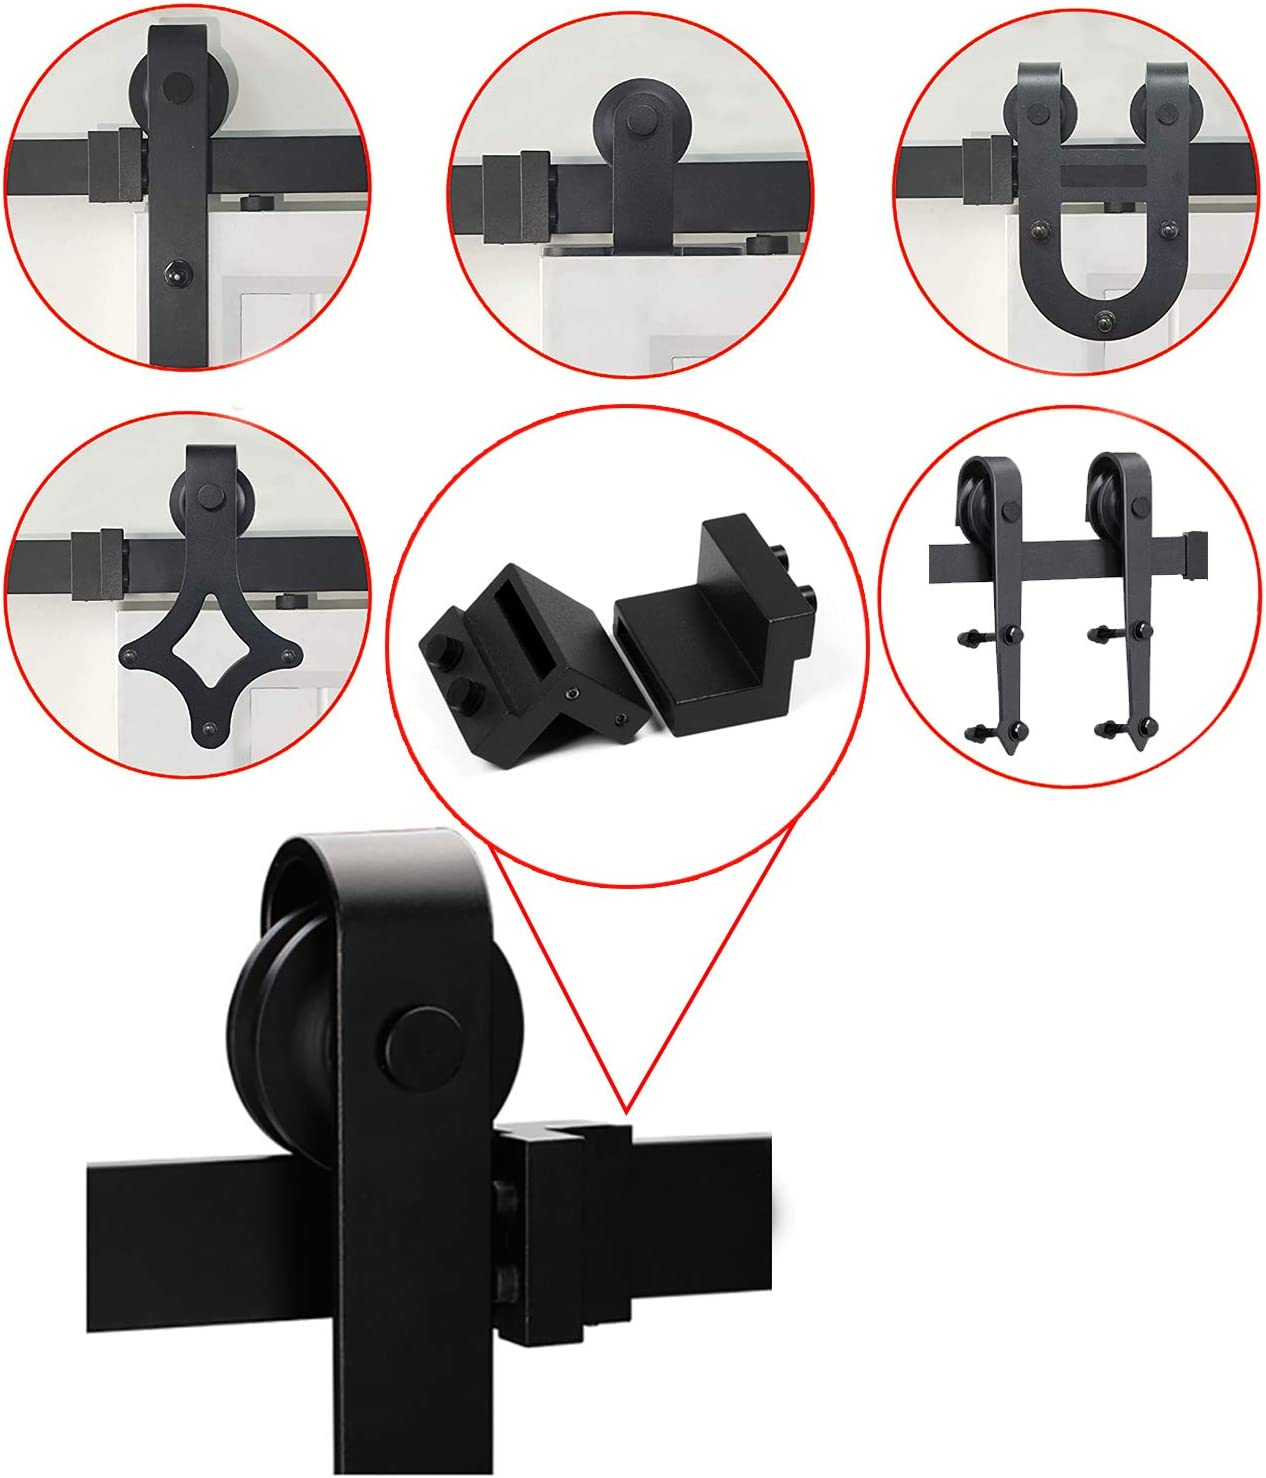 Perfect Replacement Sliding Barn Door Hardware Accessories YITUO 2PCS Black Steel Stopper Limit Device for Sliding Barn Door Flat Track